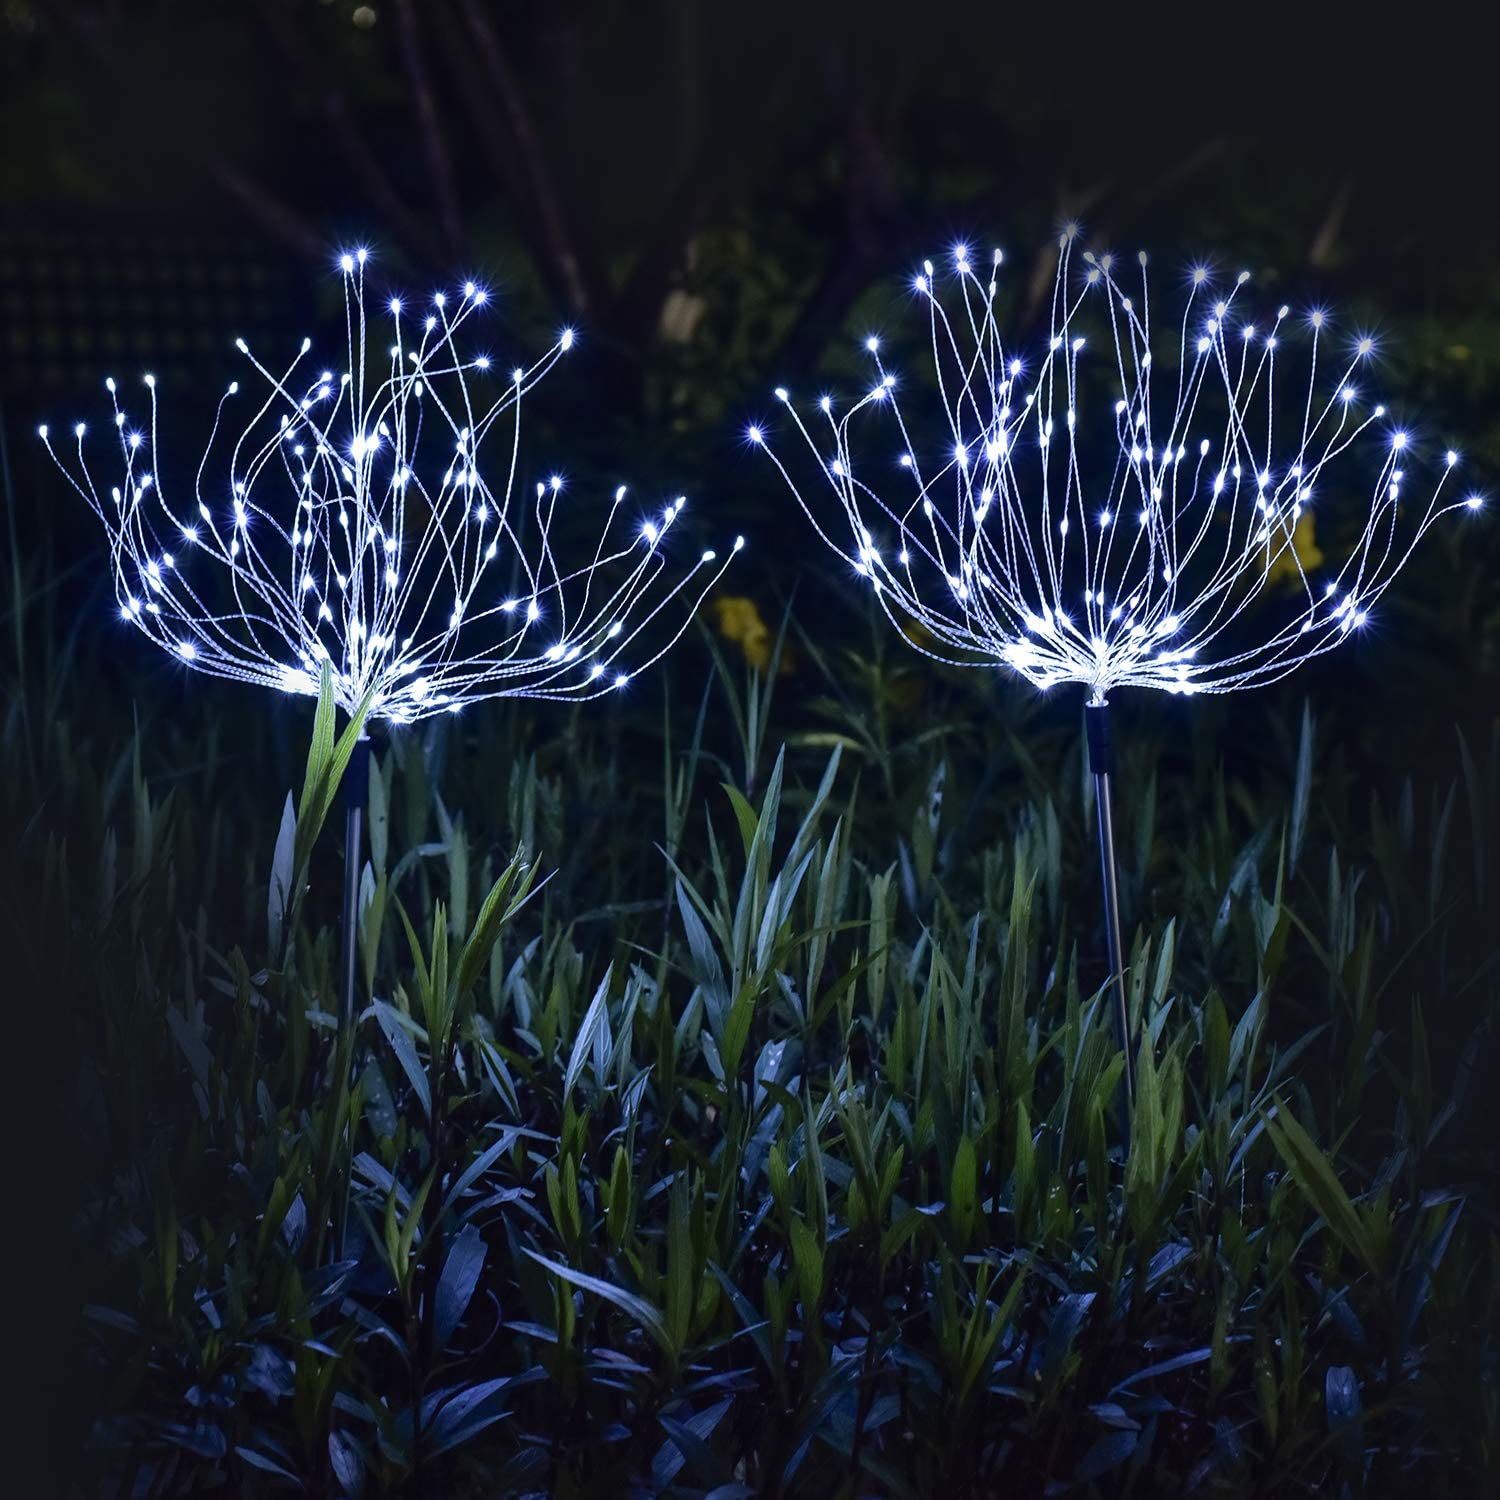 [2 Pack] ooklee Solar Garden Lights, Firework Lights, 150 LED 8 Flash Modes Copper Wires String Landscape Light Stake Fairy Light Flowers Trees for Walkway Patio Lawn Backyard Christmas (Cool White)